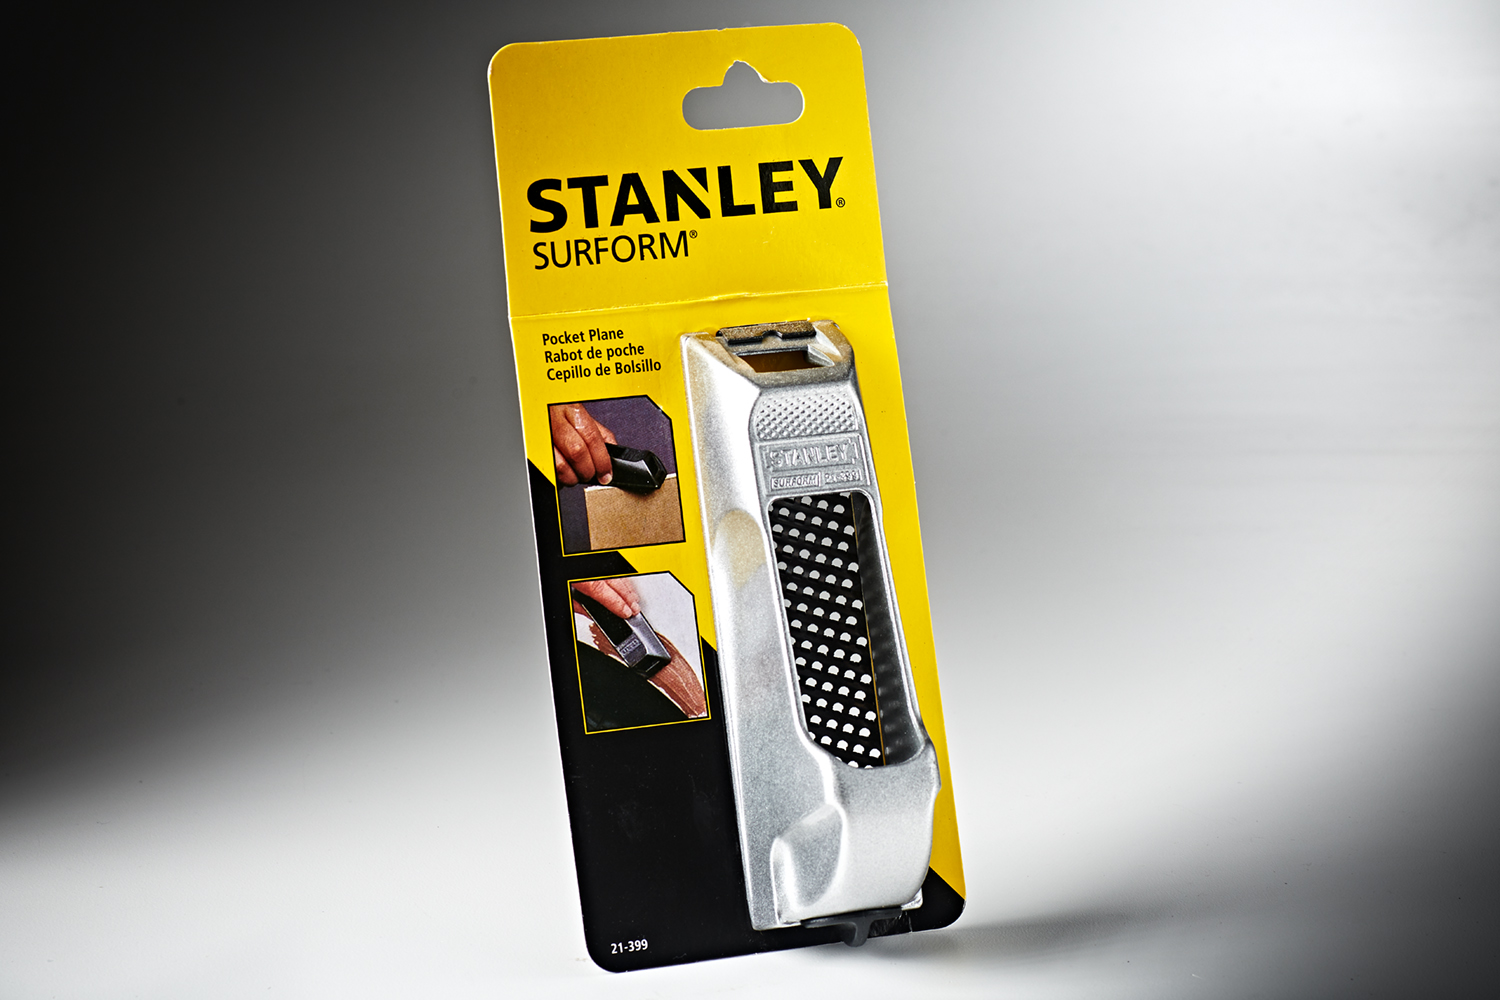 340277 #21 399 StanleySurformPocketPlane 2298